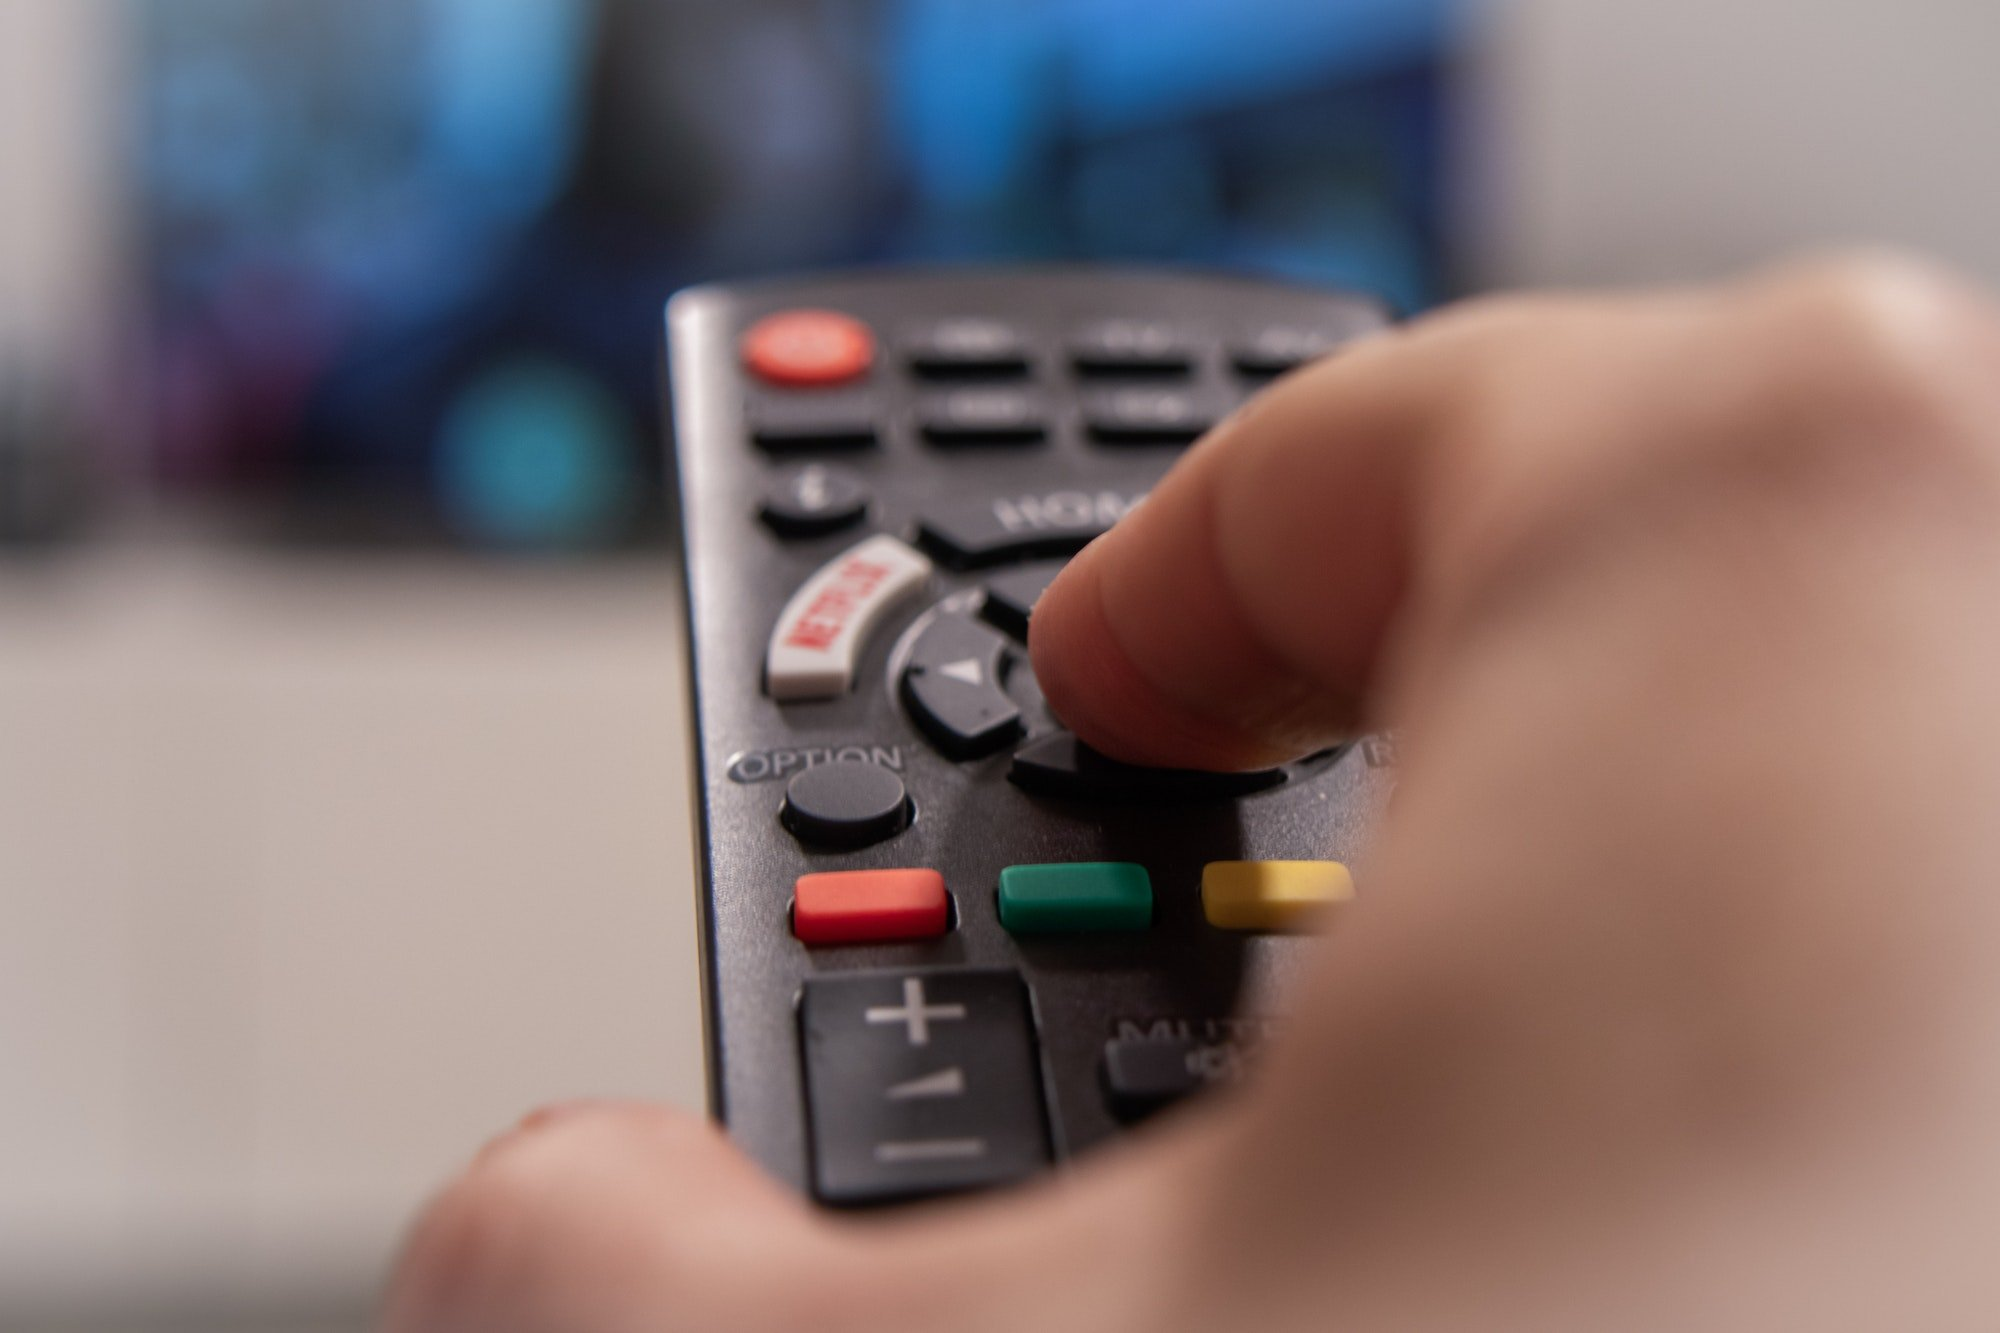 TV remote control, switches channels